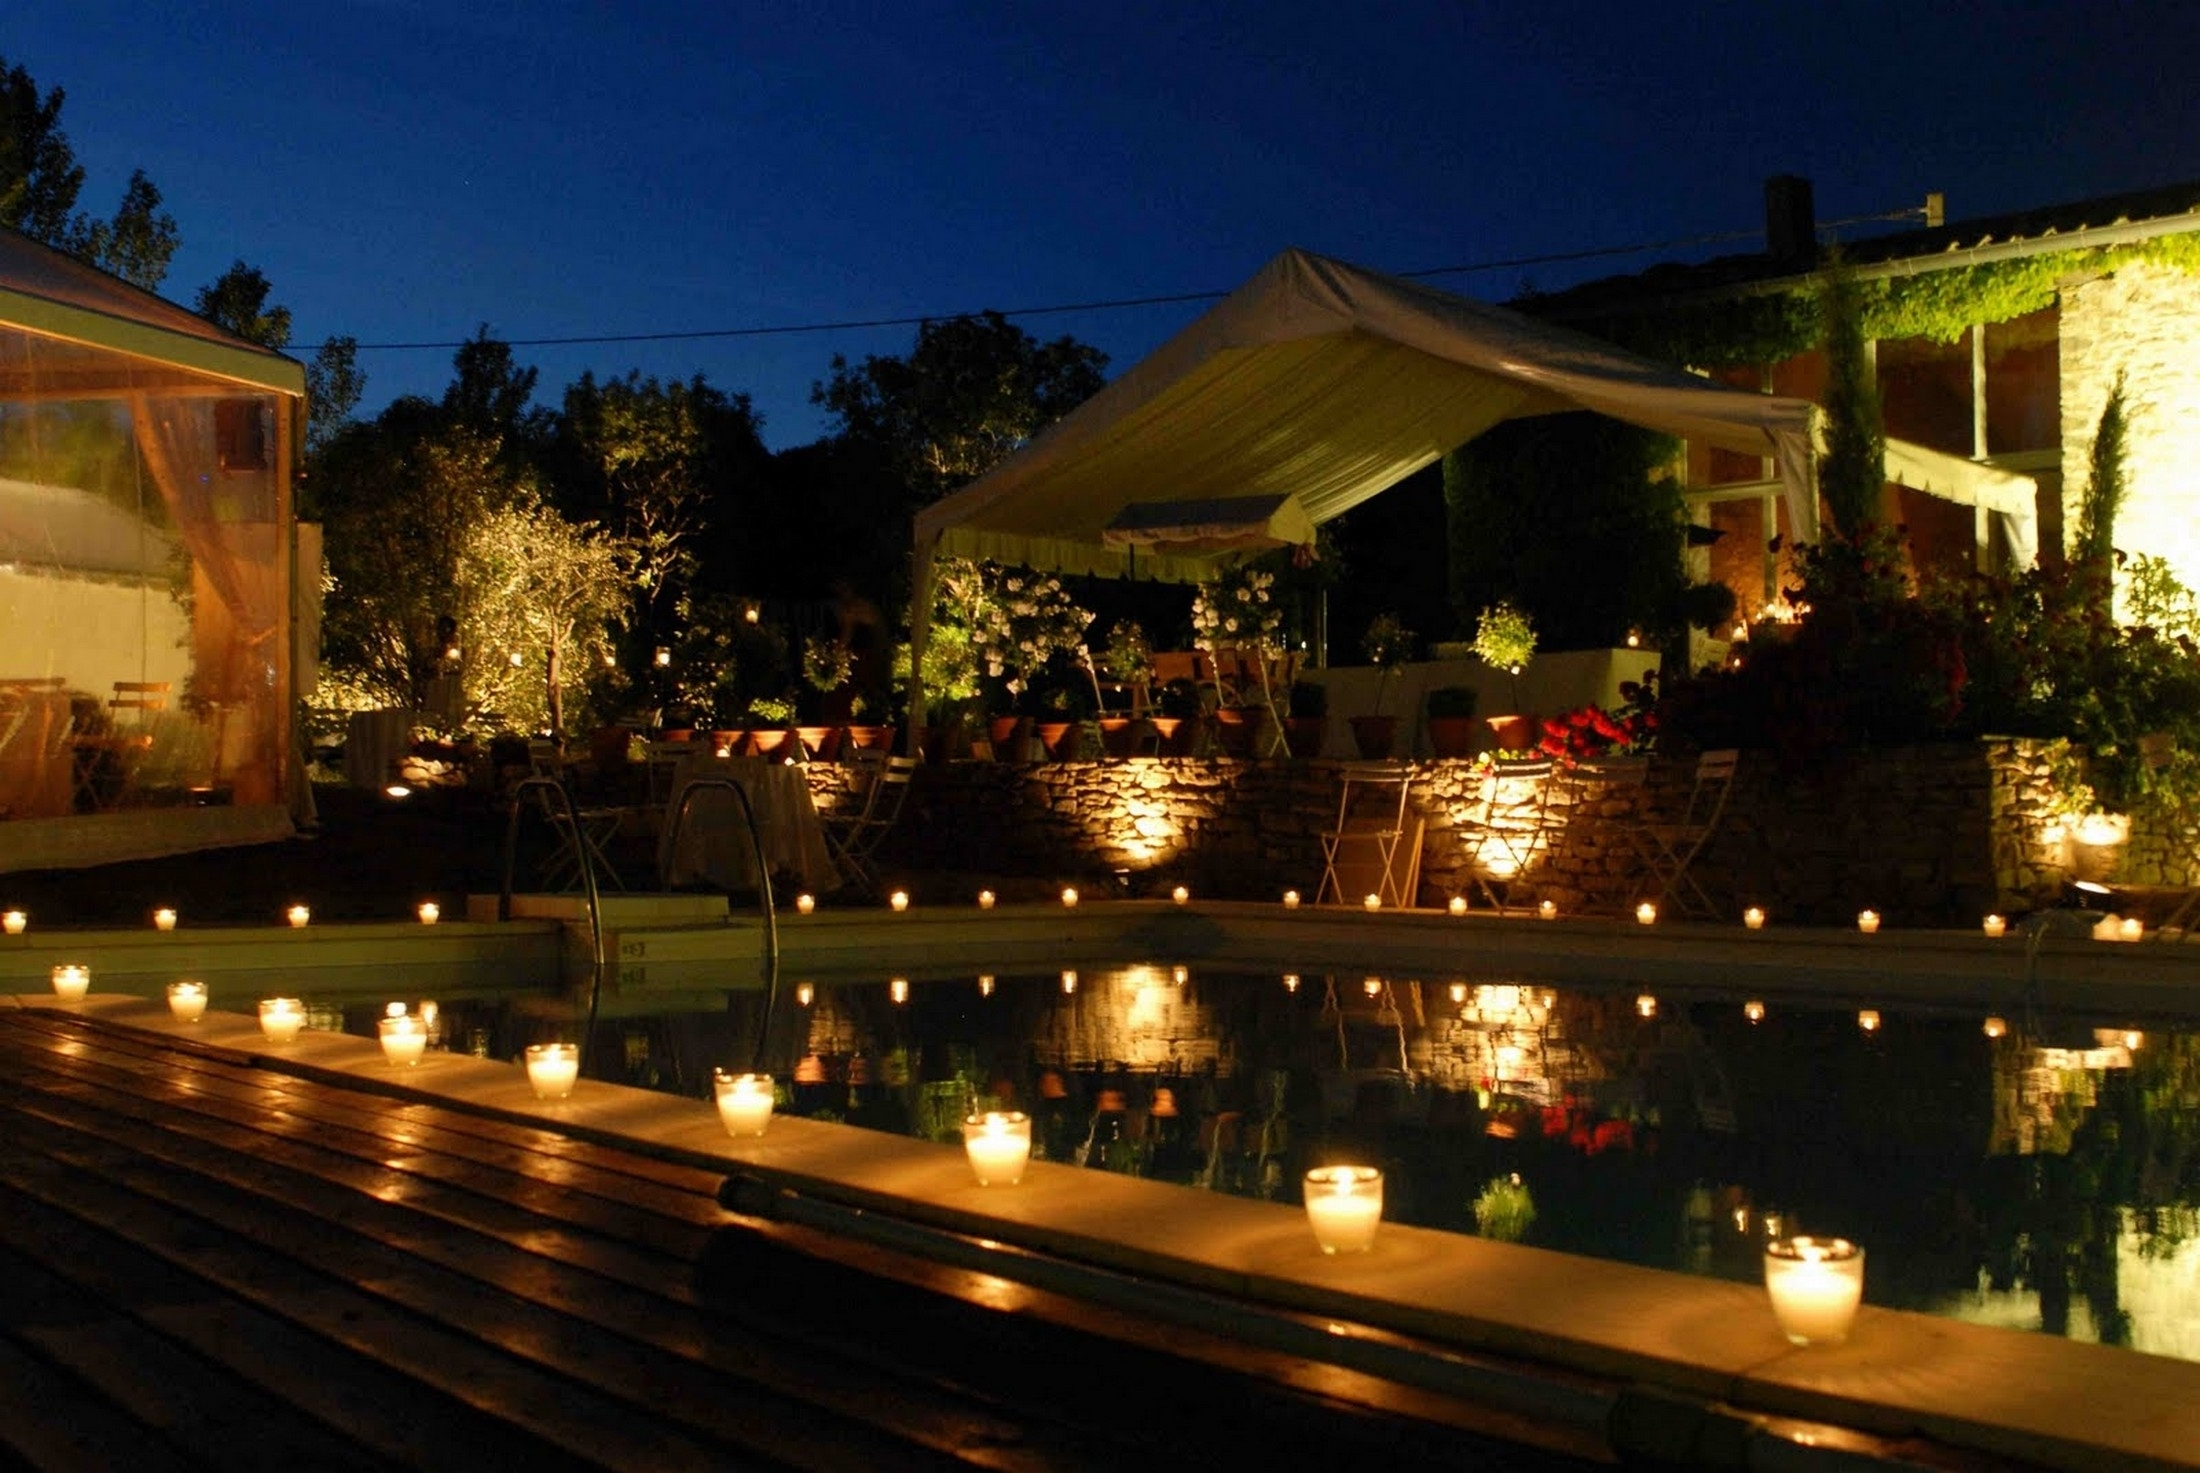 Well Known Outdoor Pool Lanterns With Regard To Gorgeous Outdoor Pool Table With Lights And Floating Candles (View 6 of 20)